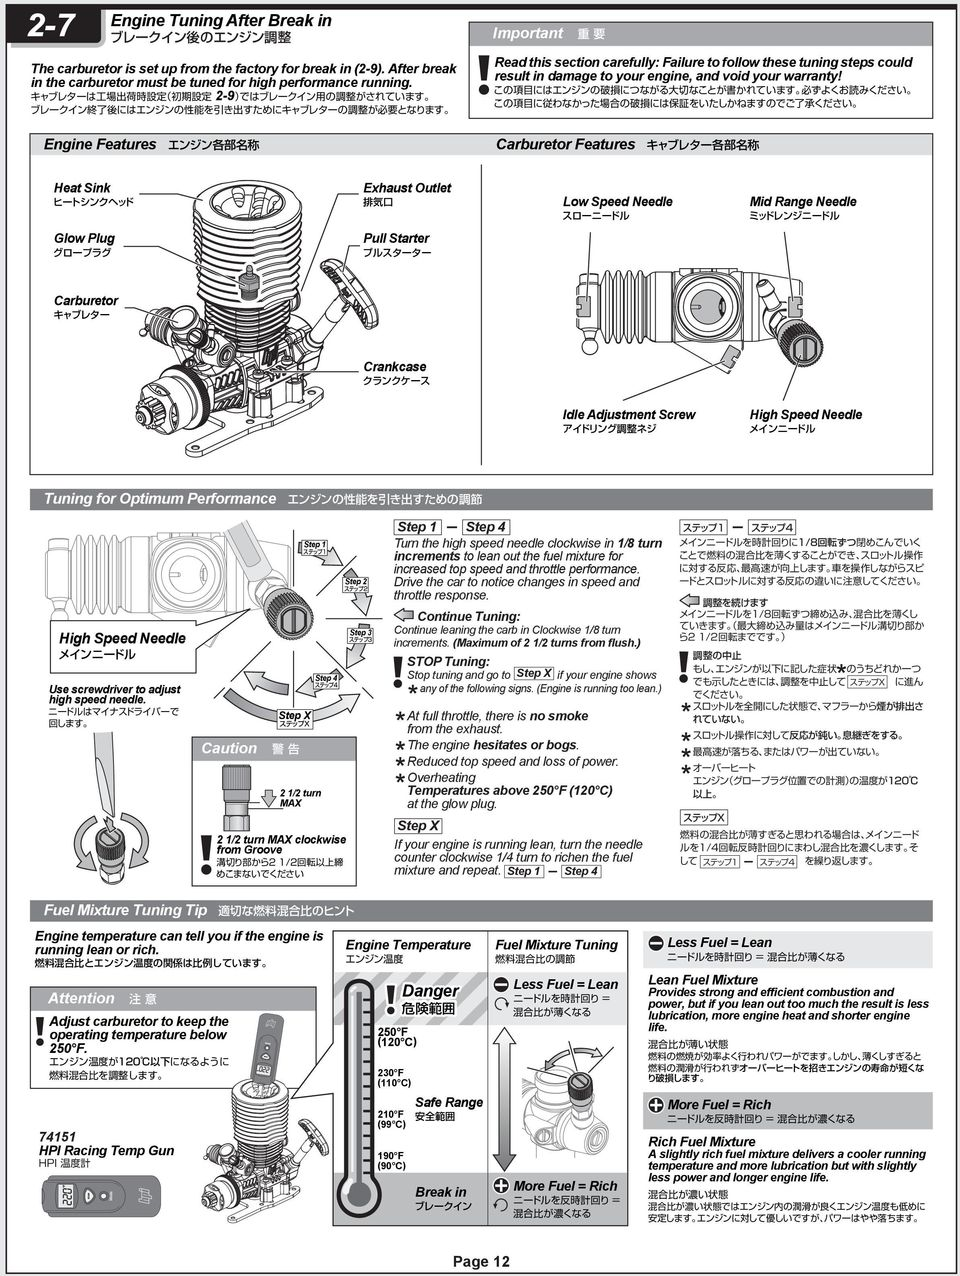 Carburetor Features Heat Sink Exhaust Outlet Low Speed Needle Mid Range Needle Glow Plug Pull Starter Carburetor Crankcase Idle Adjustment Screw High Speed Needle Tuning for Optimum Performance High